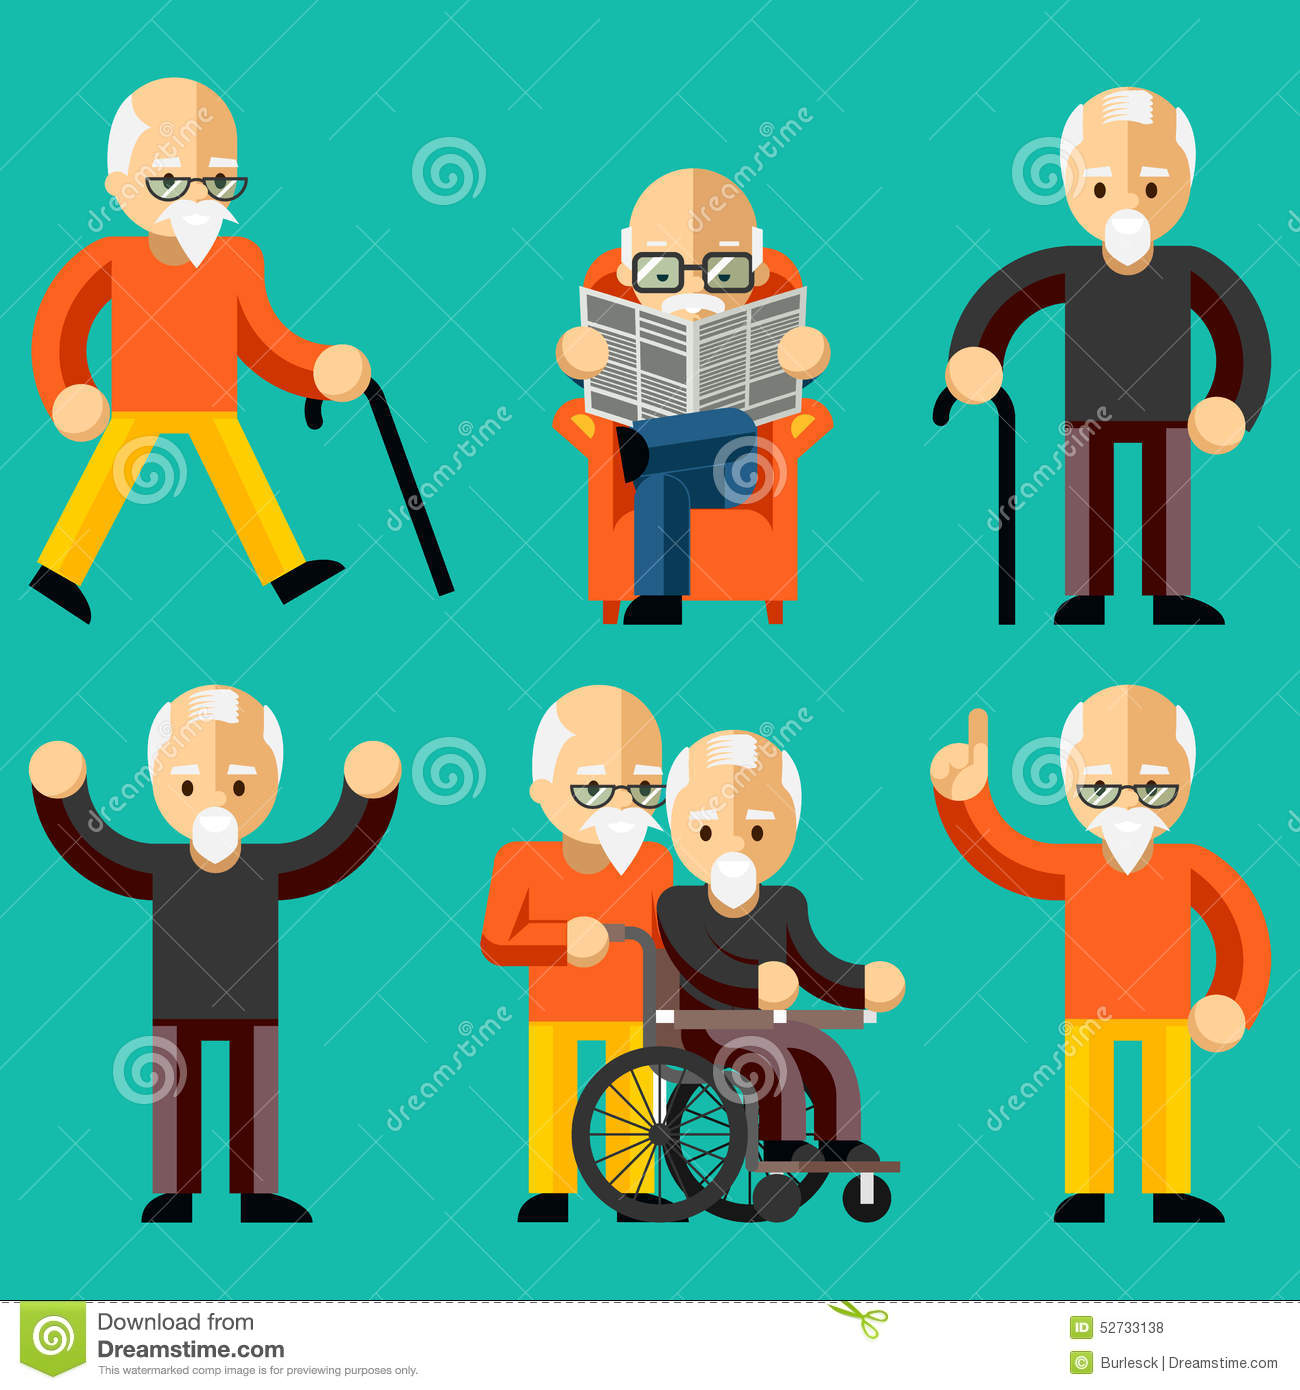 Drawing Floor Plans Free Older People Elderly Activity Elderly Care Stock Vector